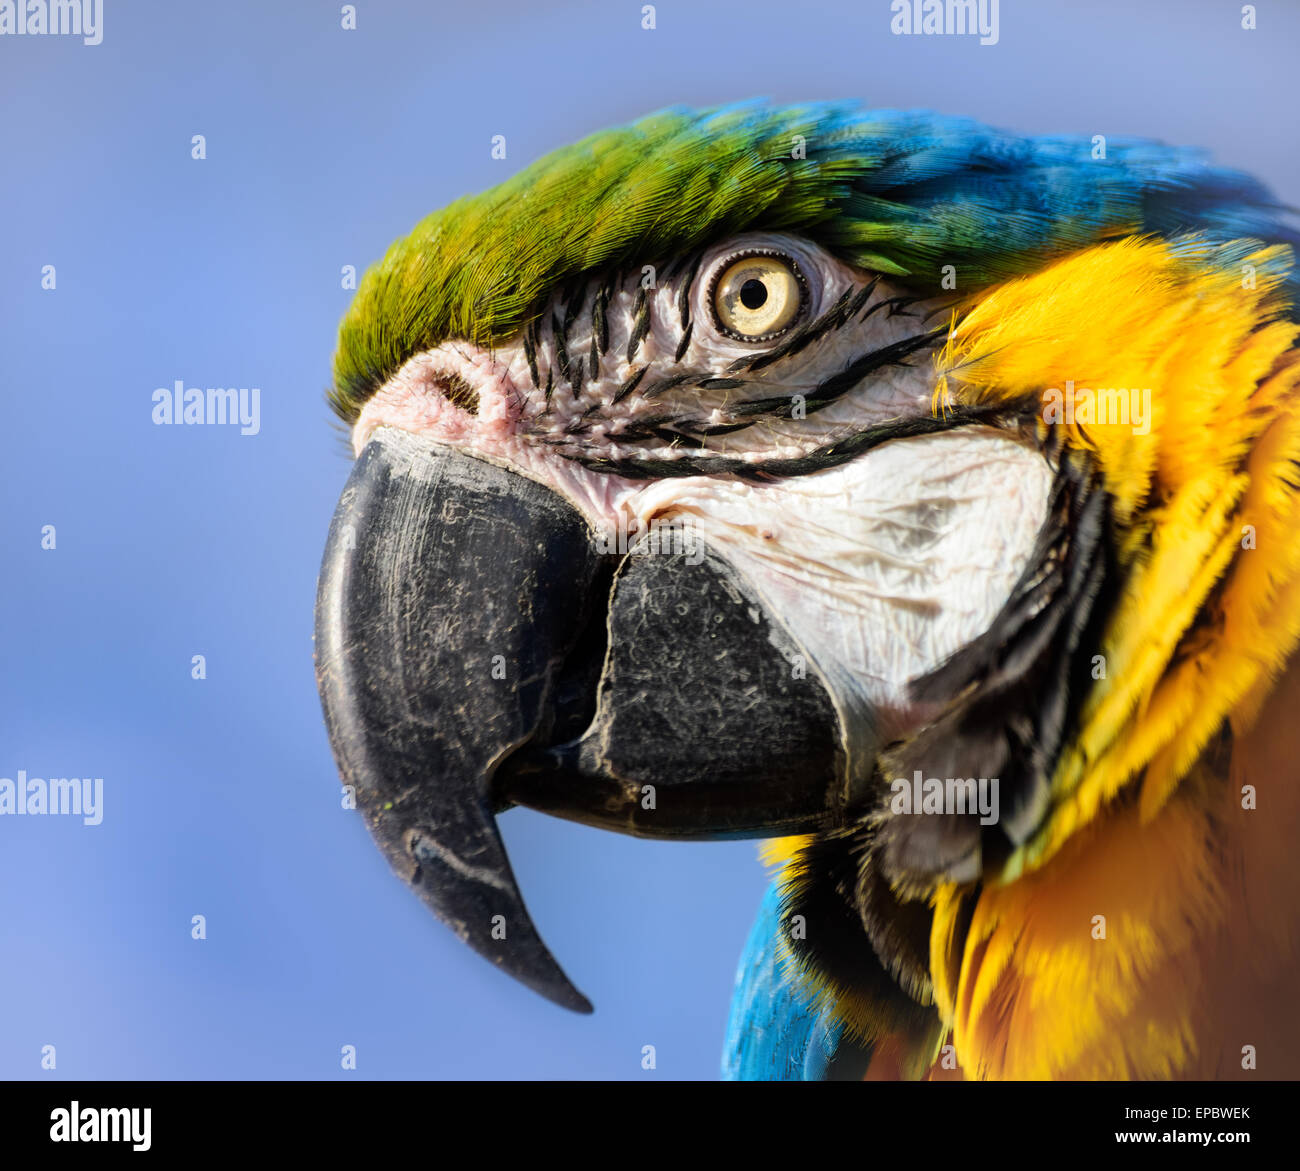 Macaw Parrot close up portrait, blue and yellow, Hawaii Stock Photo